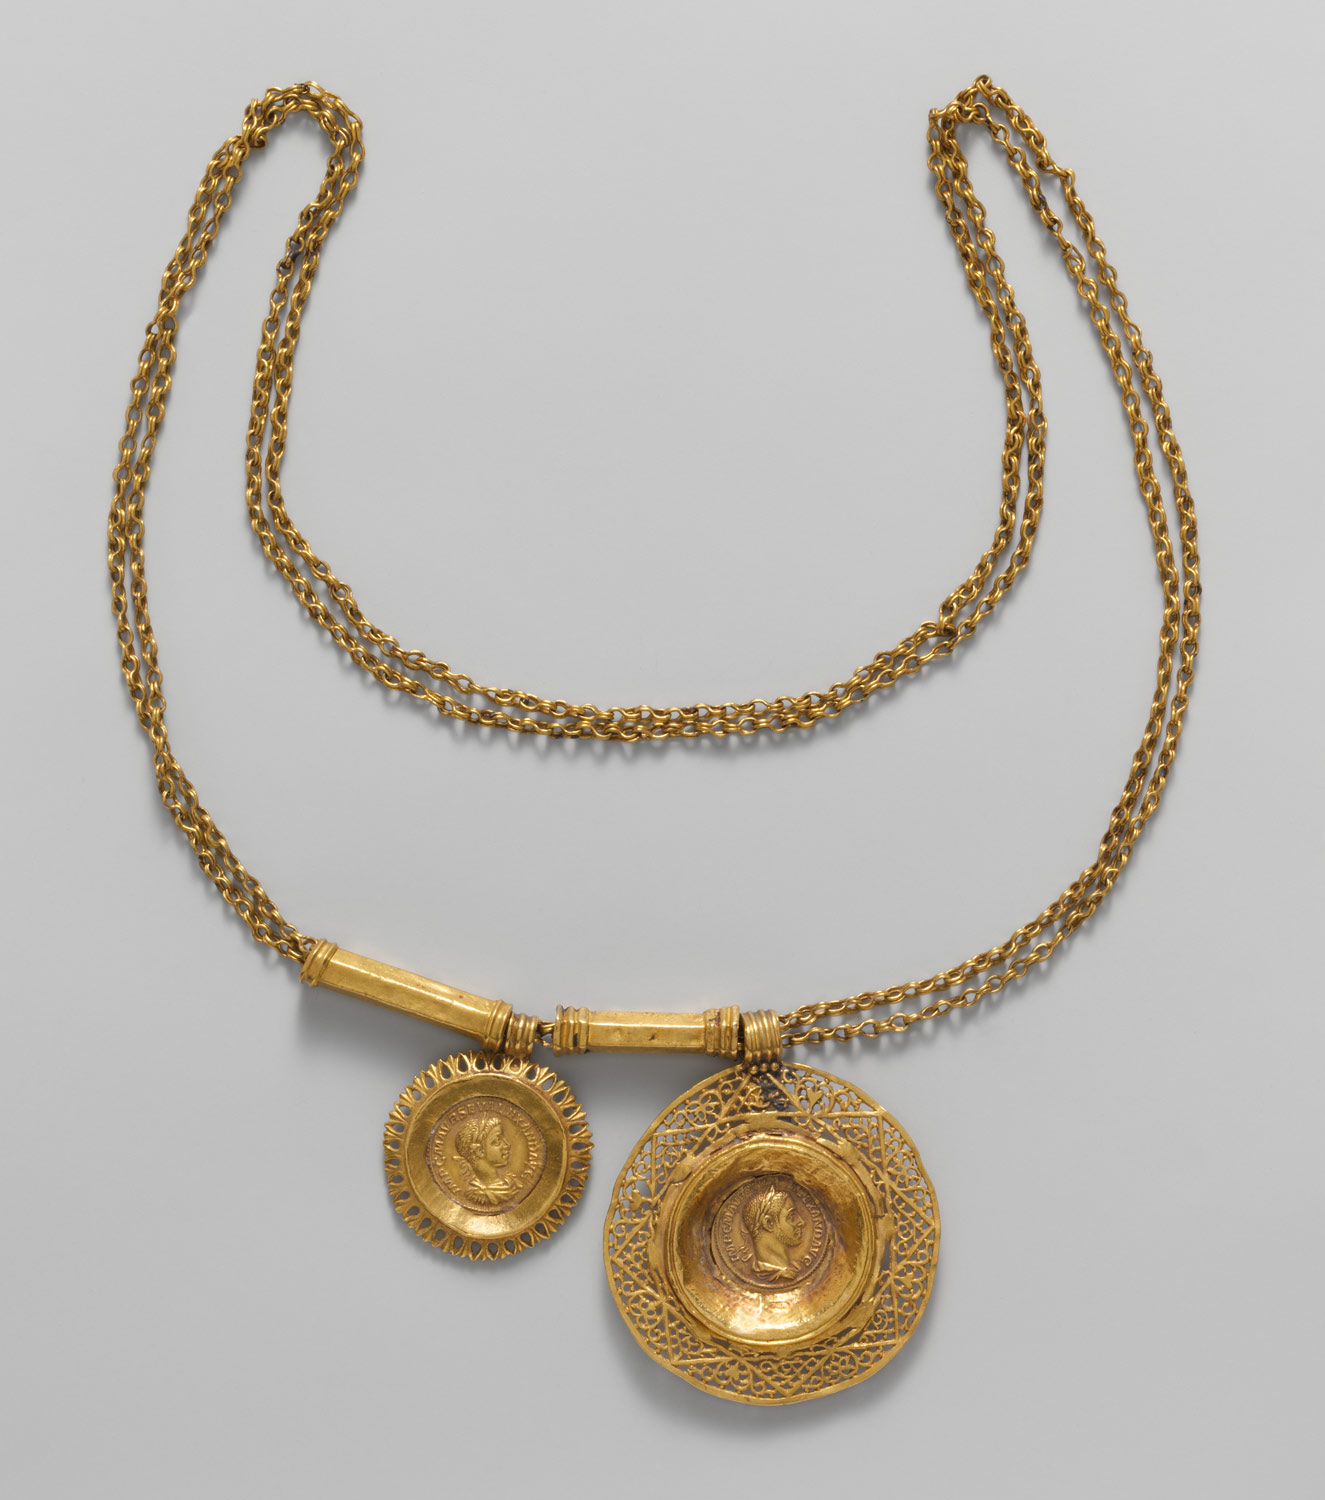 Gold necklace with coin pendants work of art heilbrunn gold necklace with coin pendants aloadofball Image collections